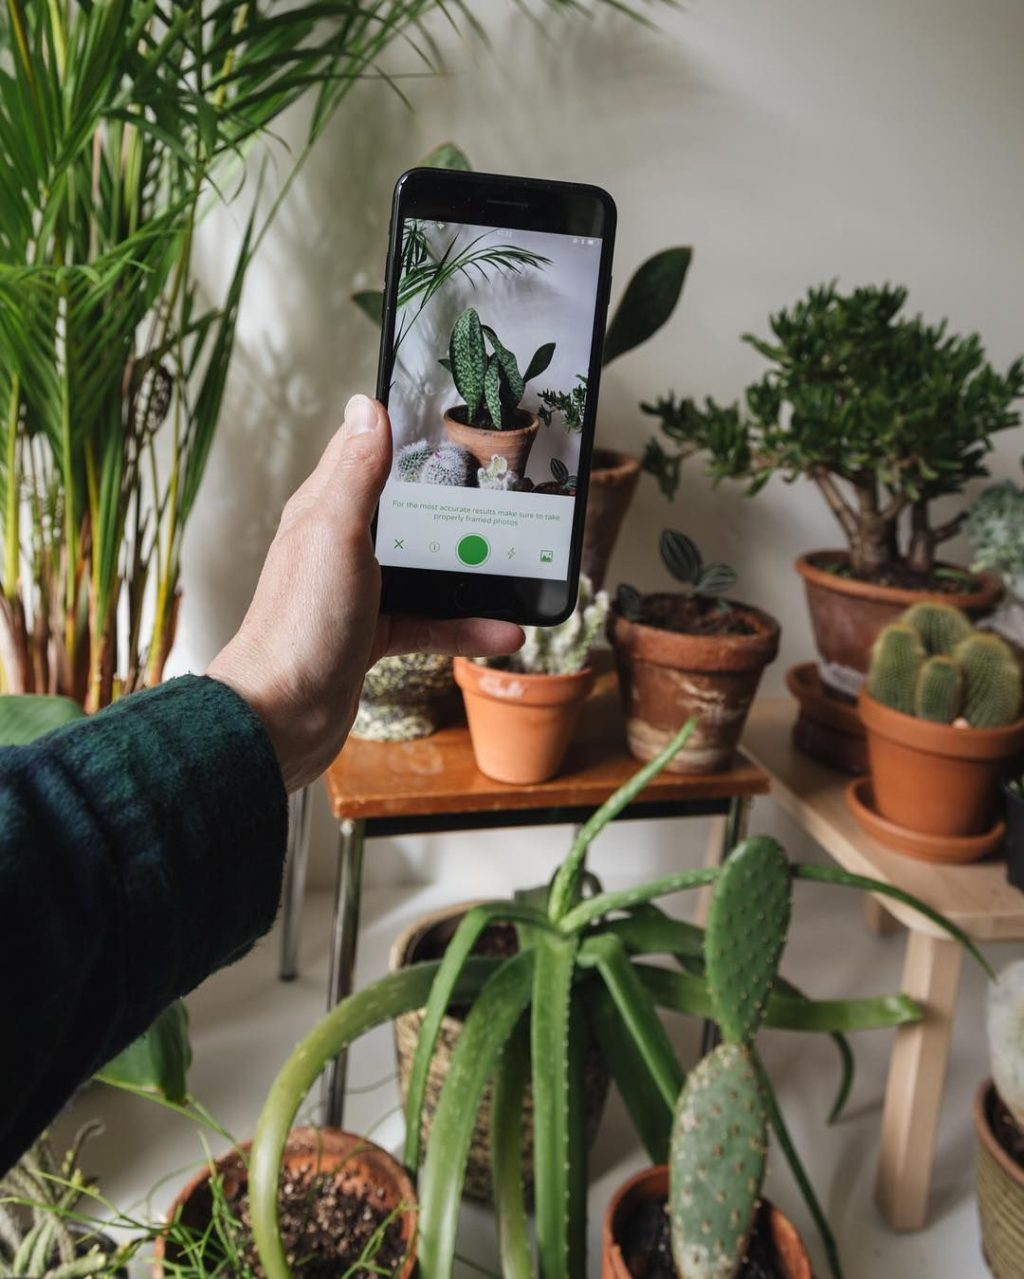 2021 Best Applications for Plant and Garden Care